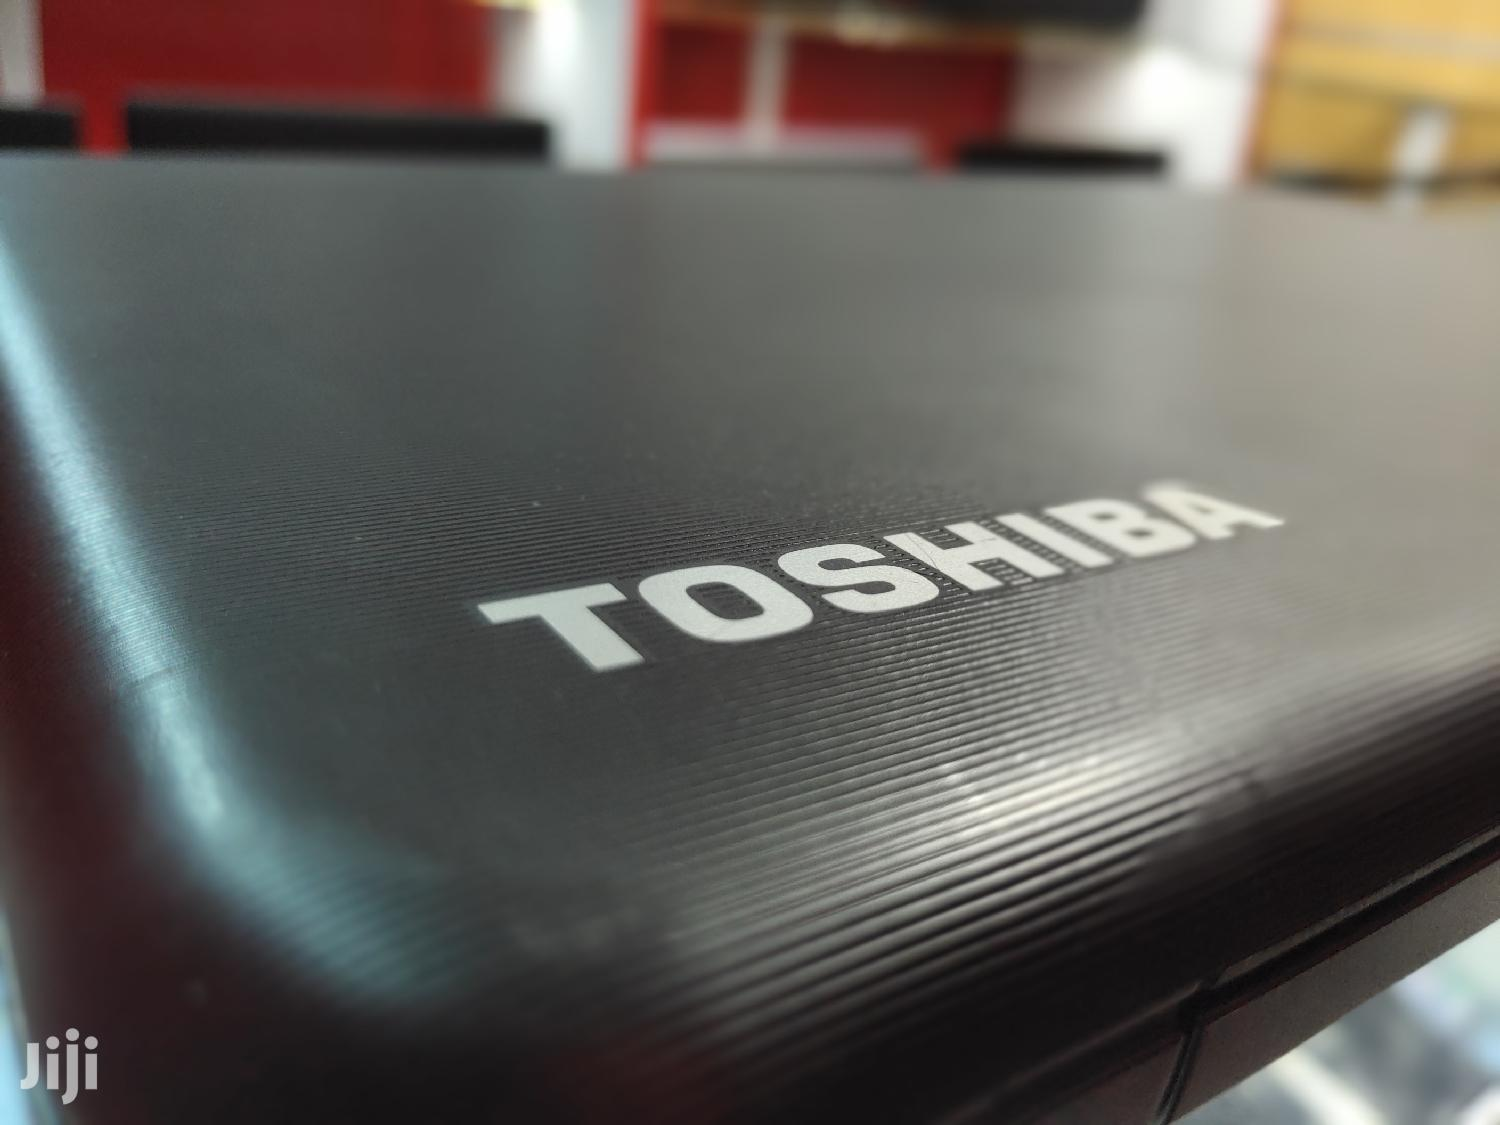 Laptop Toshiba Satellite C55 4GB Intel Core i3 HDD 500GB | Laptops & Computers for sale in Kampala, Central Region, Uganda